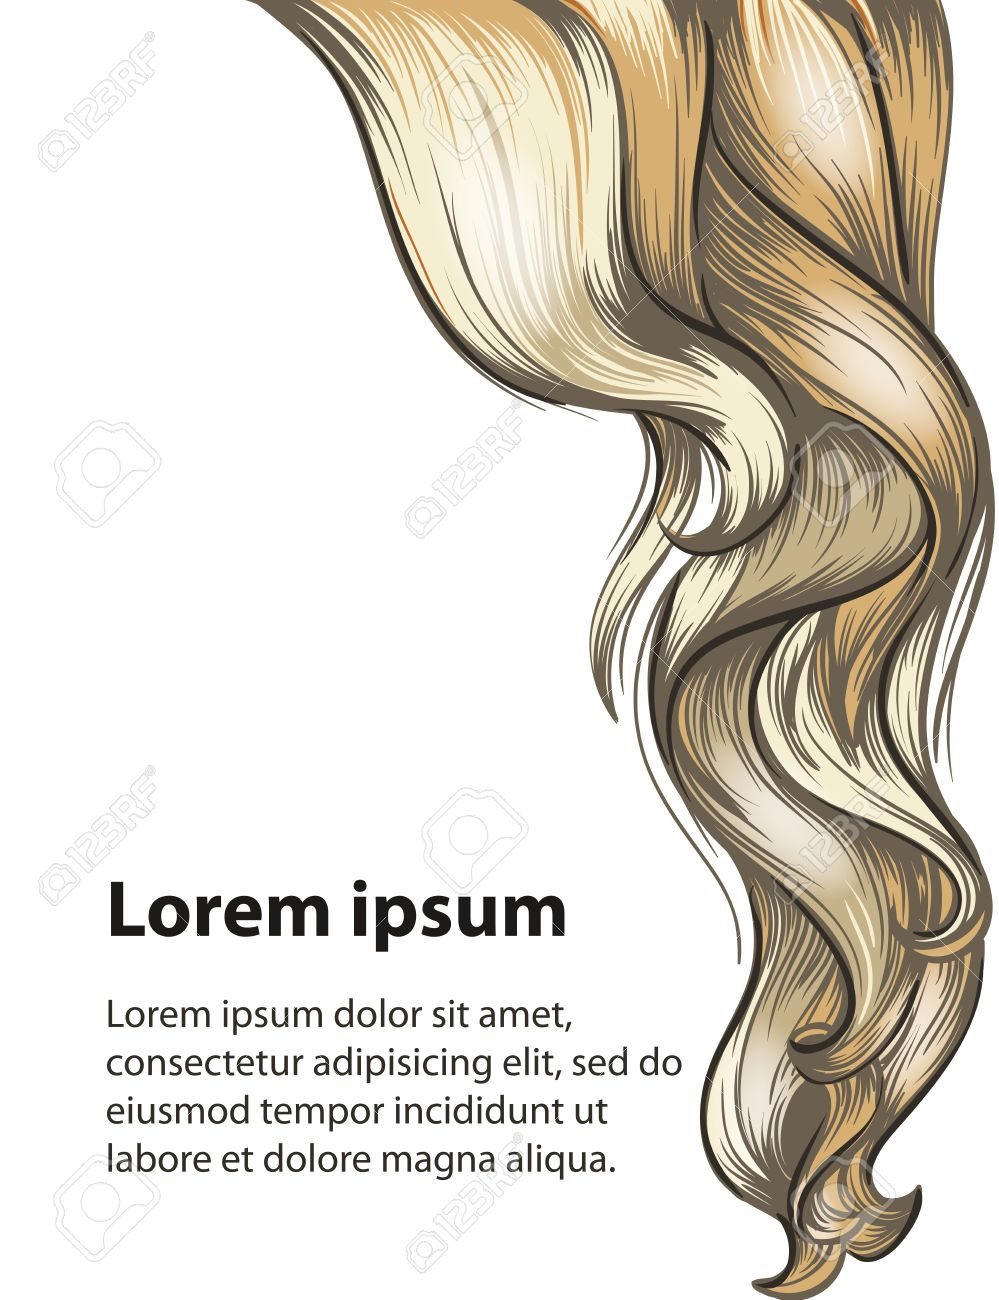 Hair Style And Hair Care Design Template Royalty Free Cliparts ...